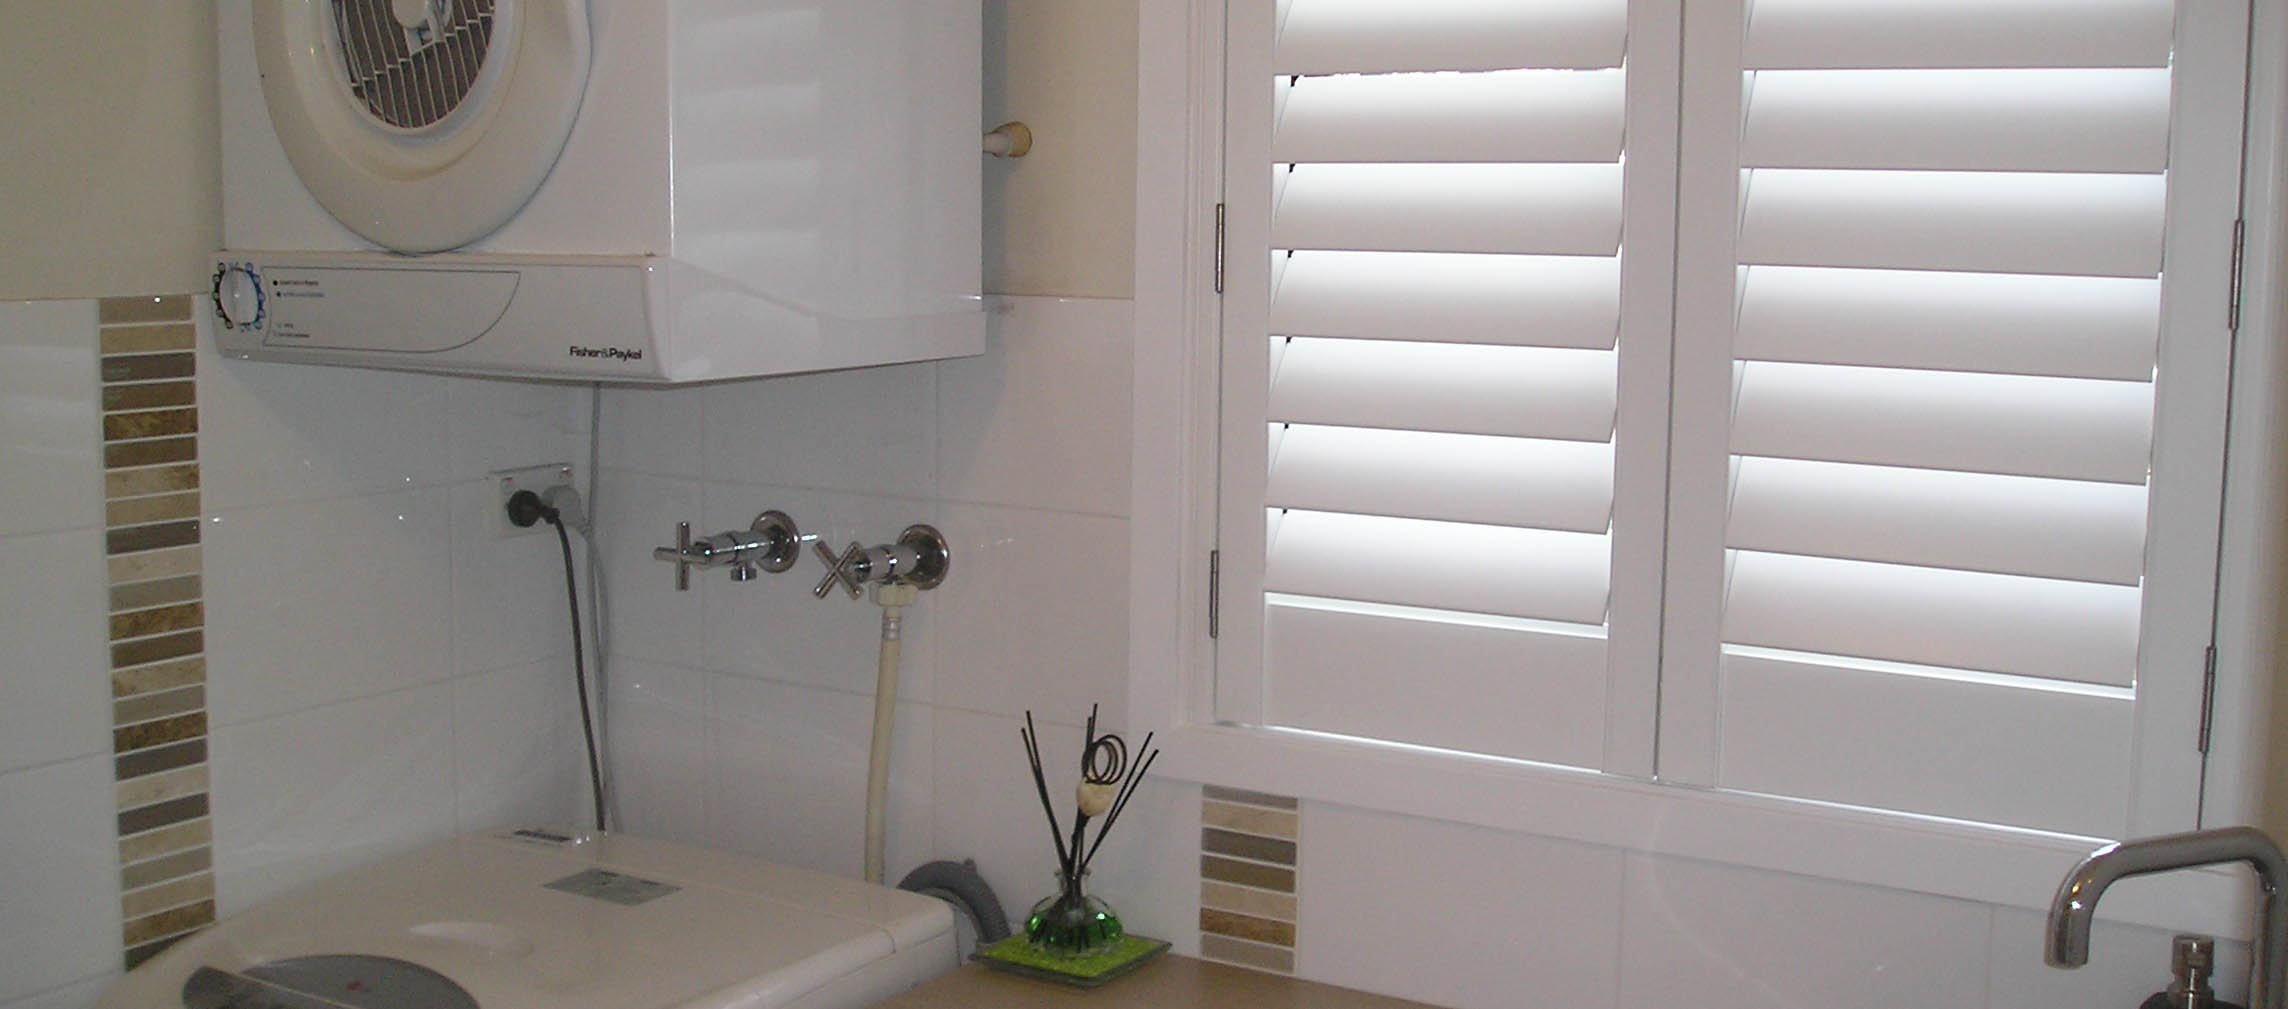 Thermopoly Shutters Laundry